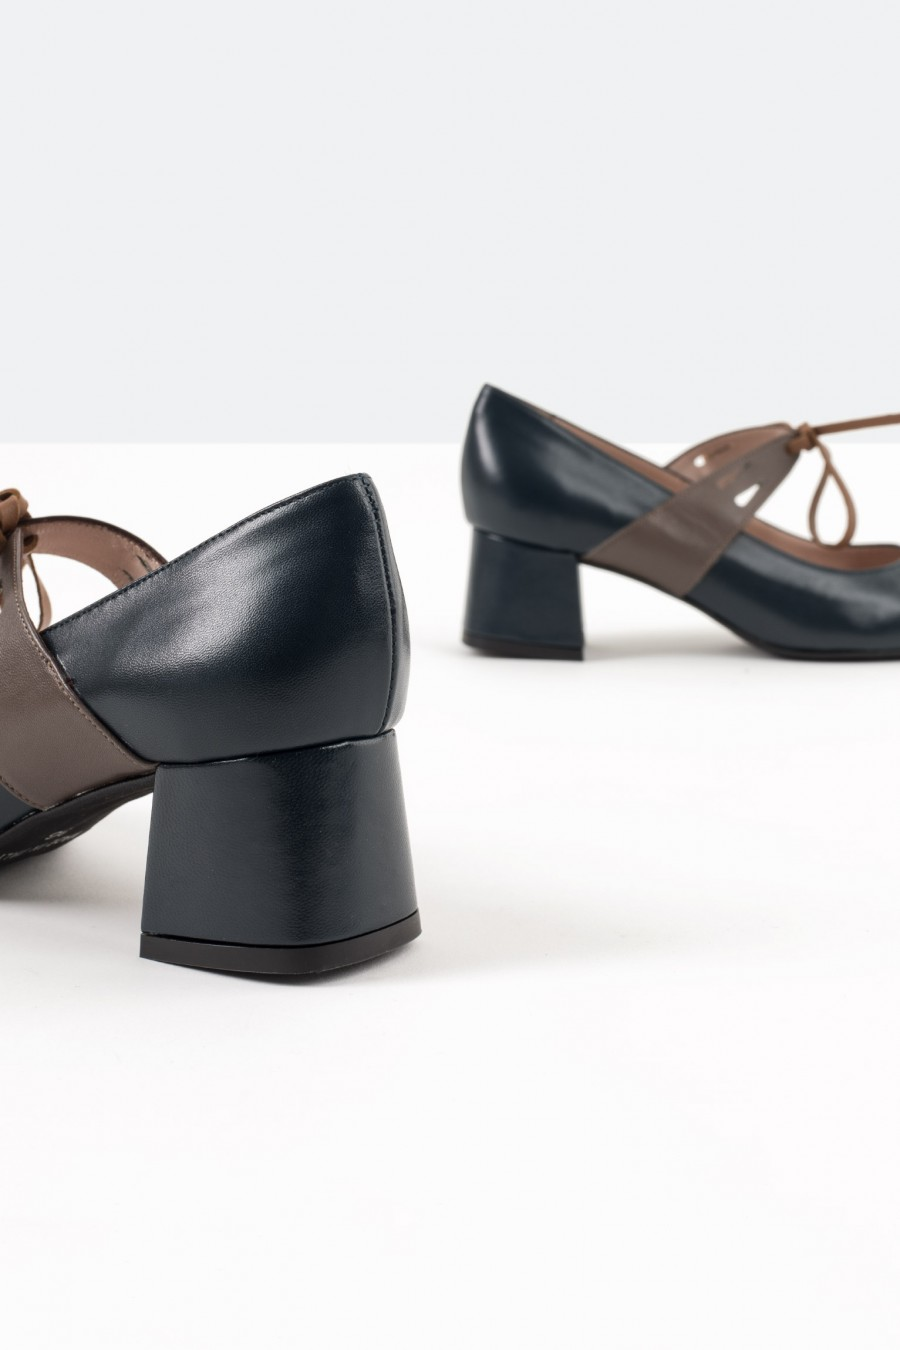 Bebè shoes with leather straps